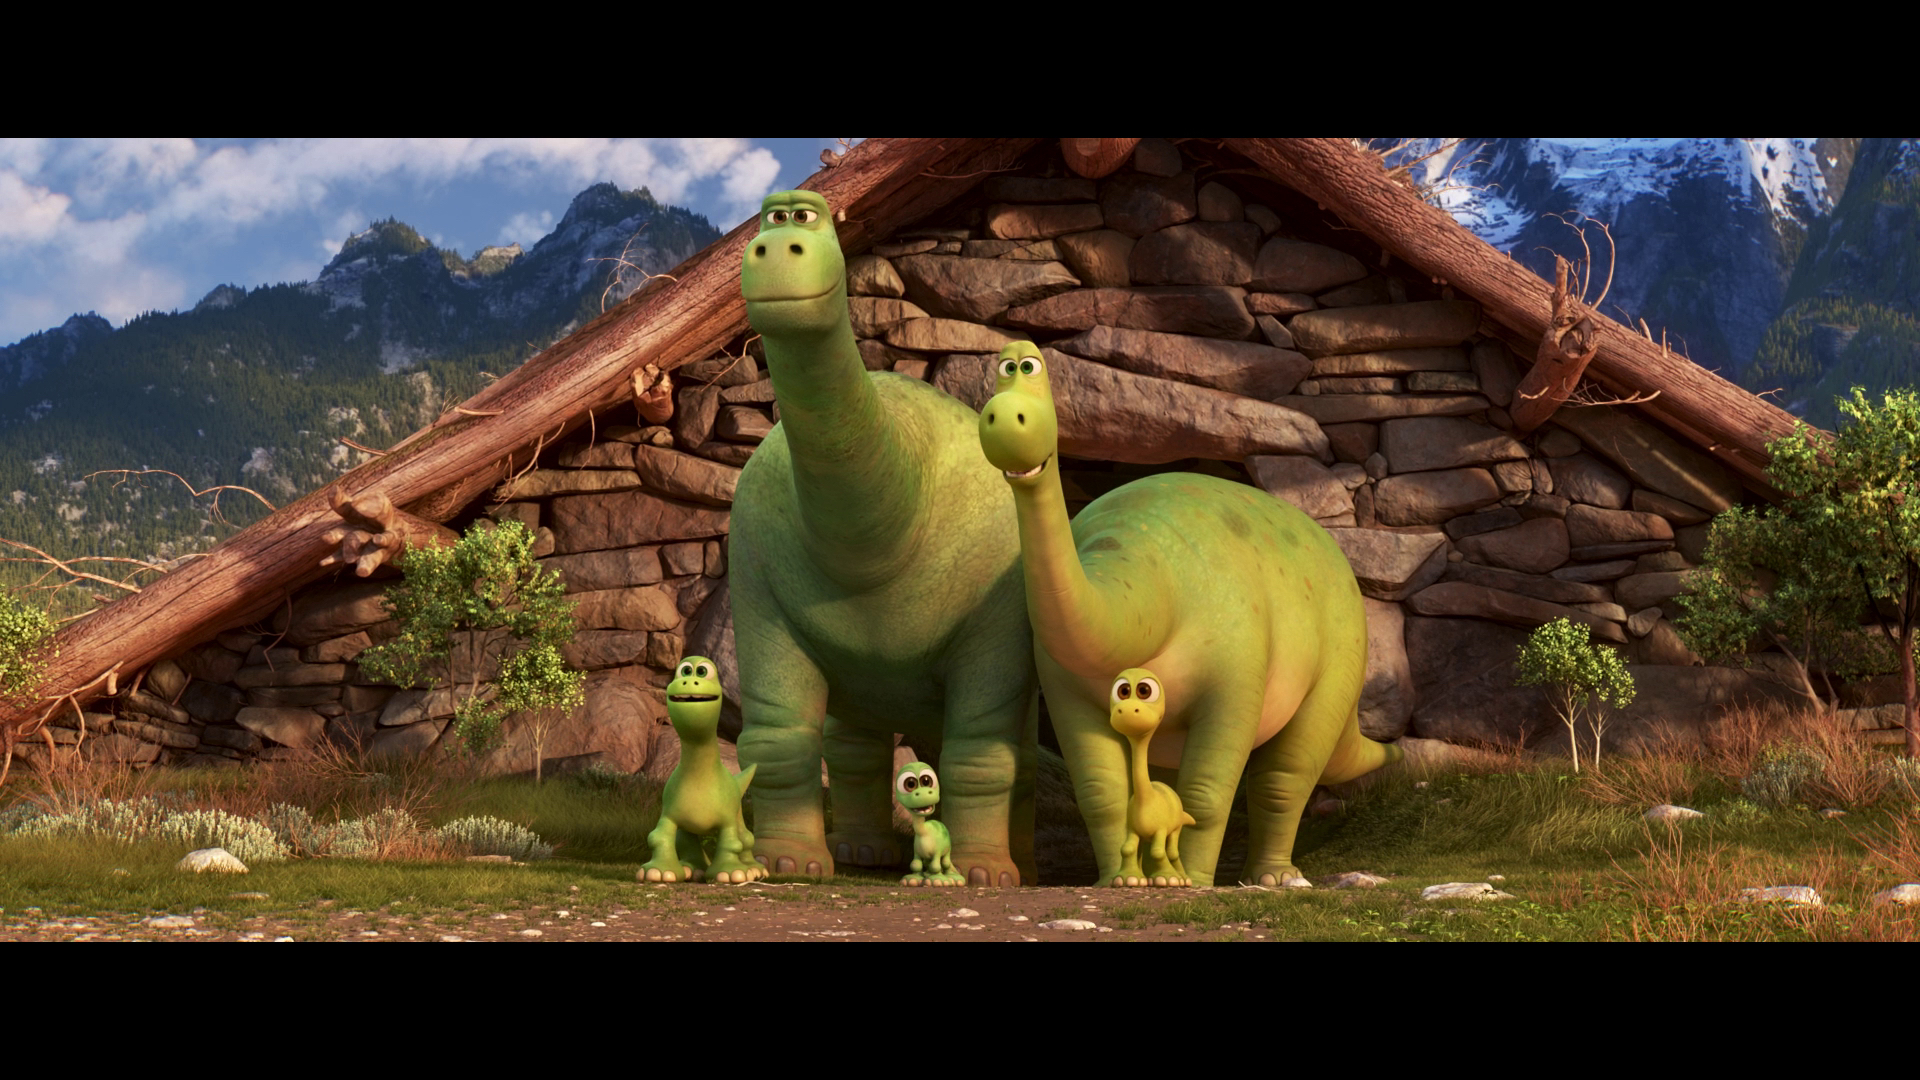 Triceratops The Good Dinosaur: The Good Dinosaur (Blu-ray) : DVD Talk Review Of The Blu-ray